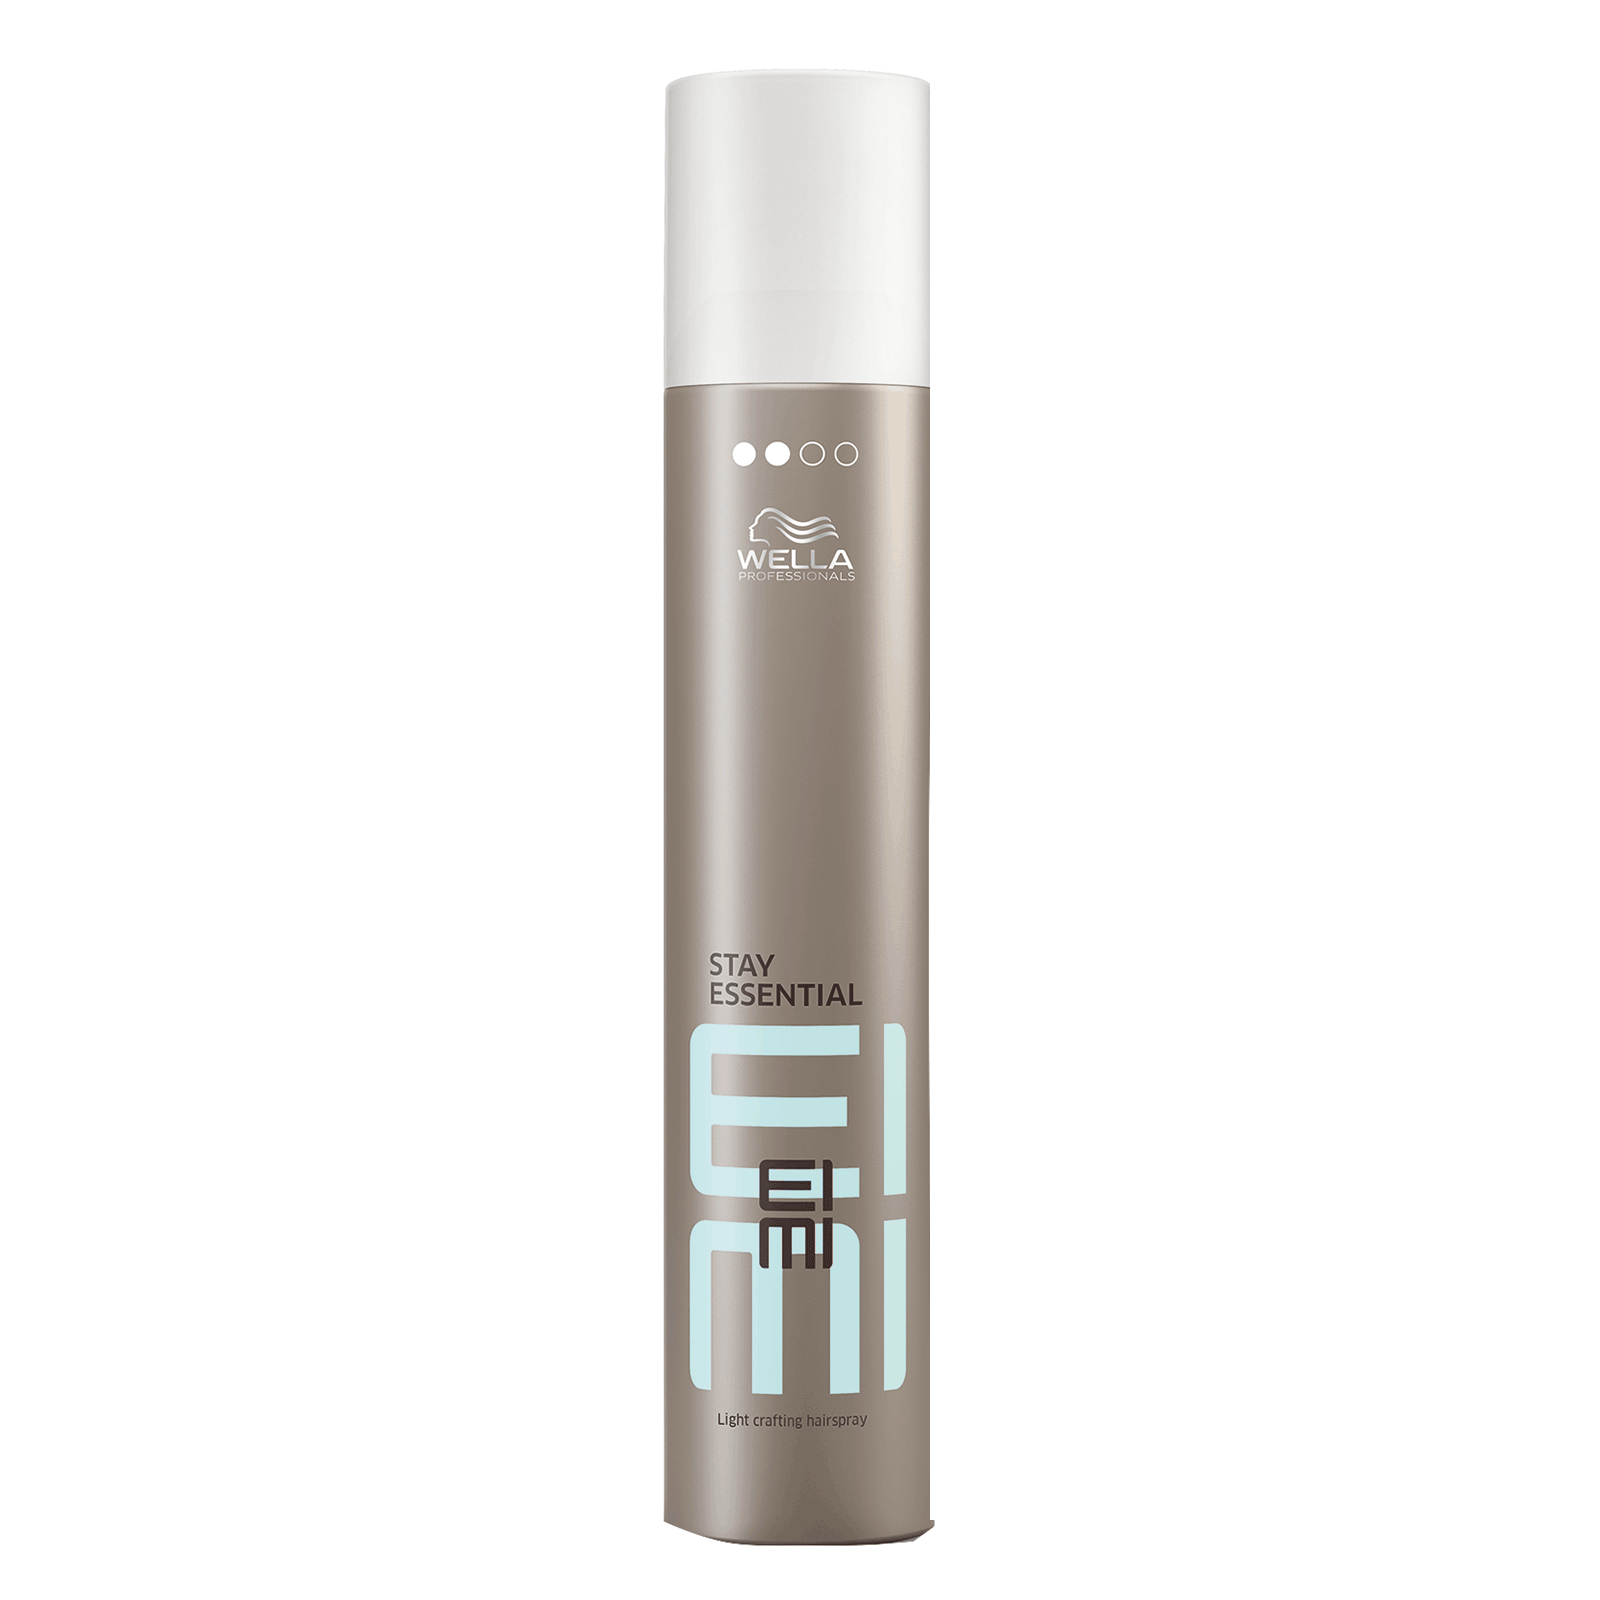 Stay Essential Light Crafting Spray